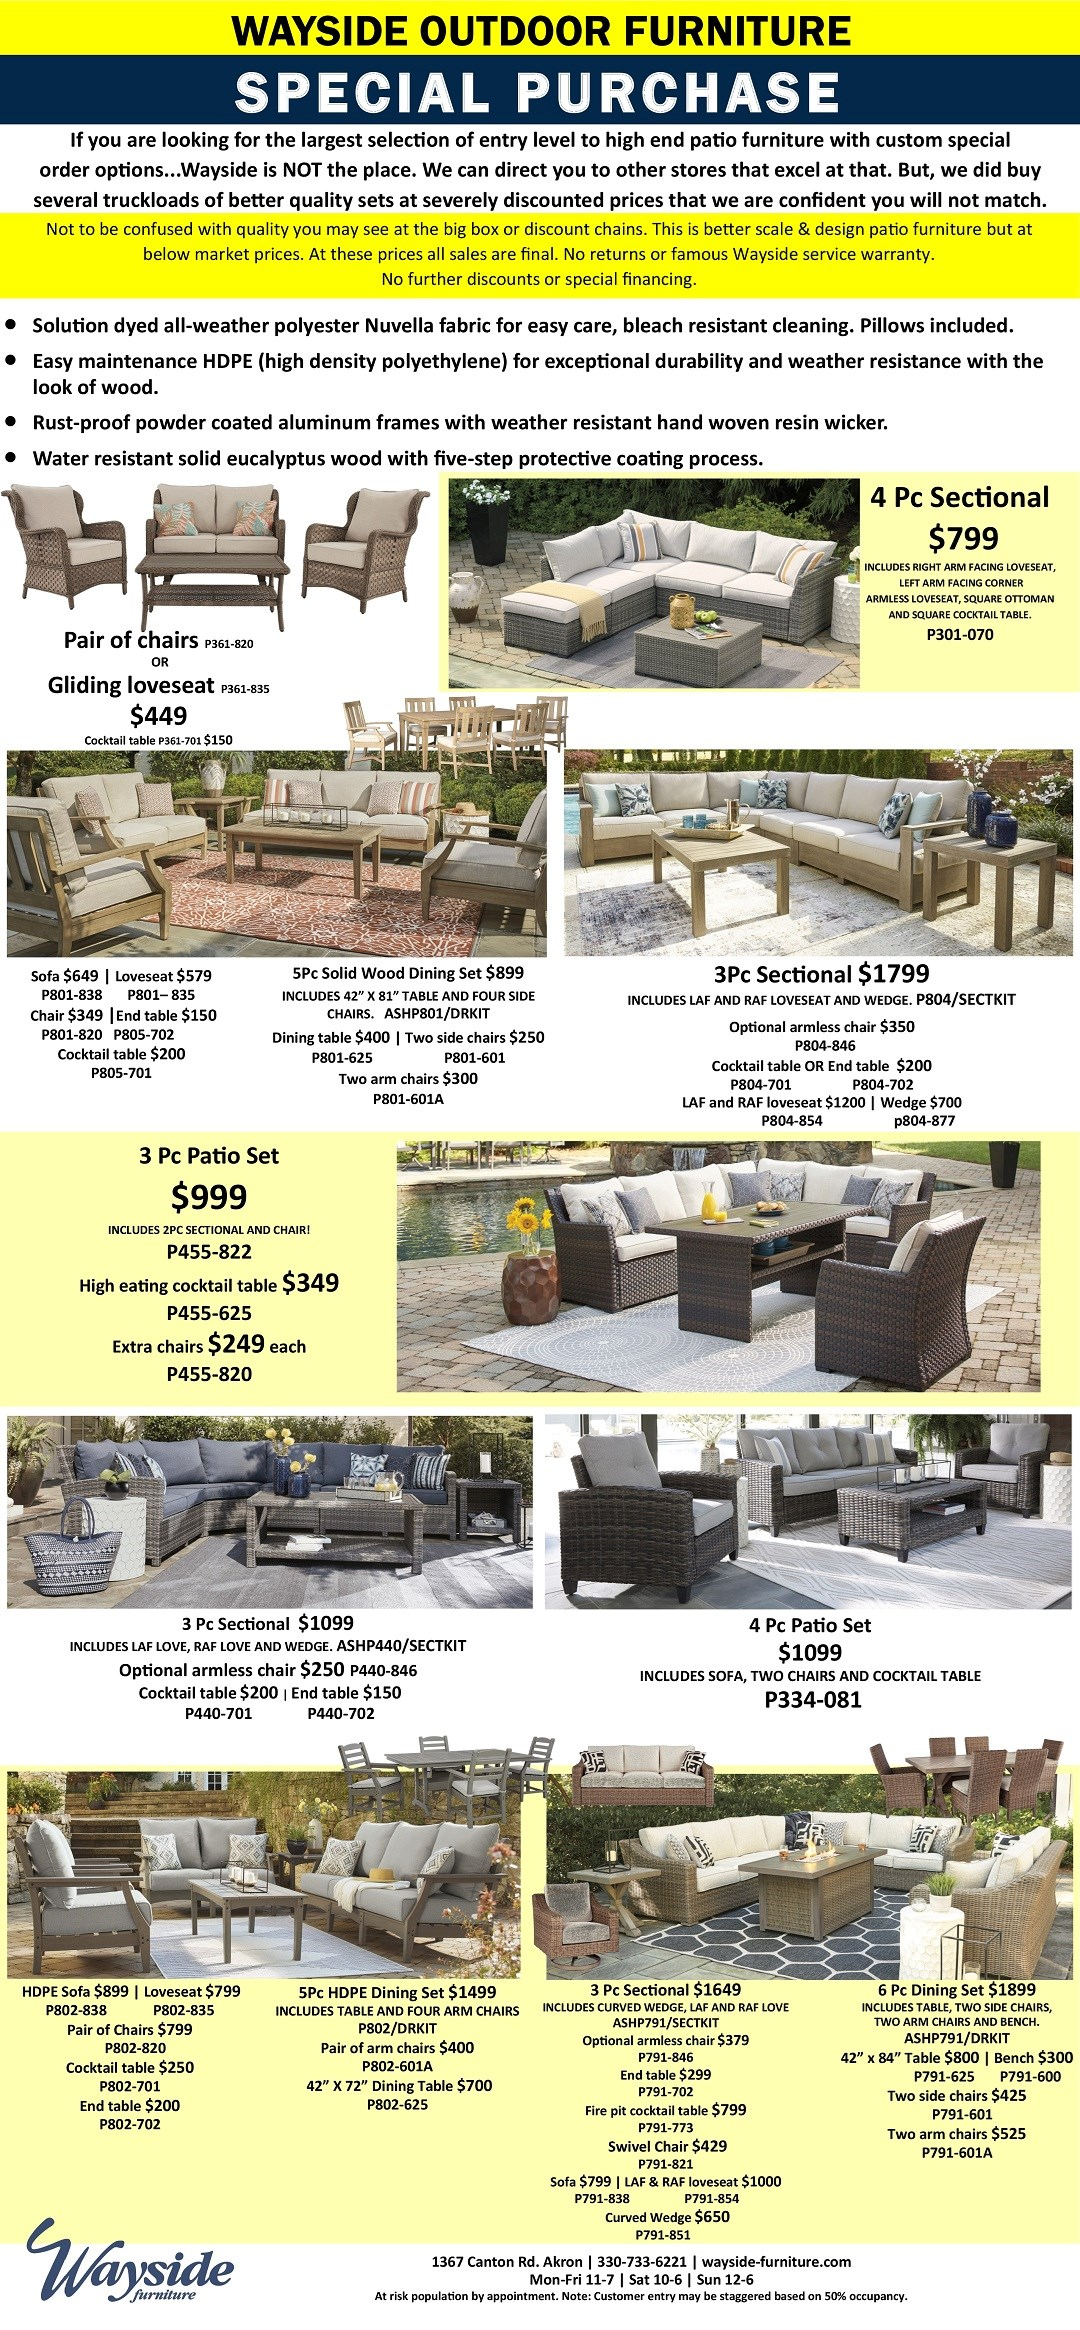 Wayside Furniture special purchase outdoor furniture